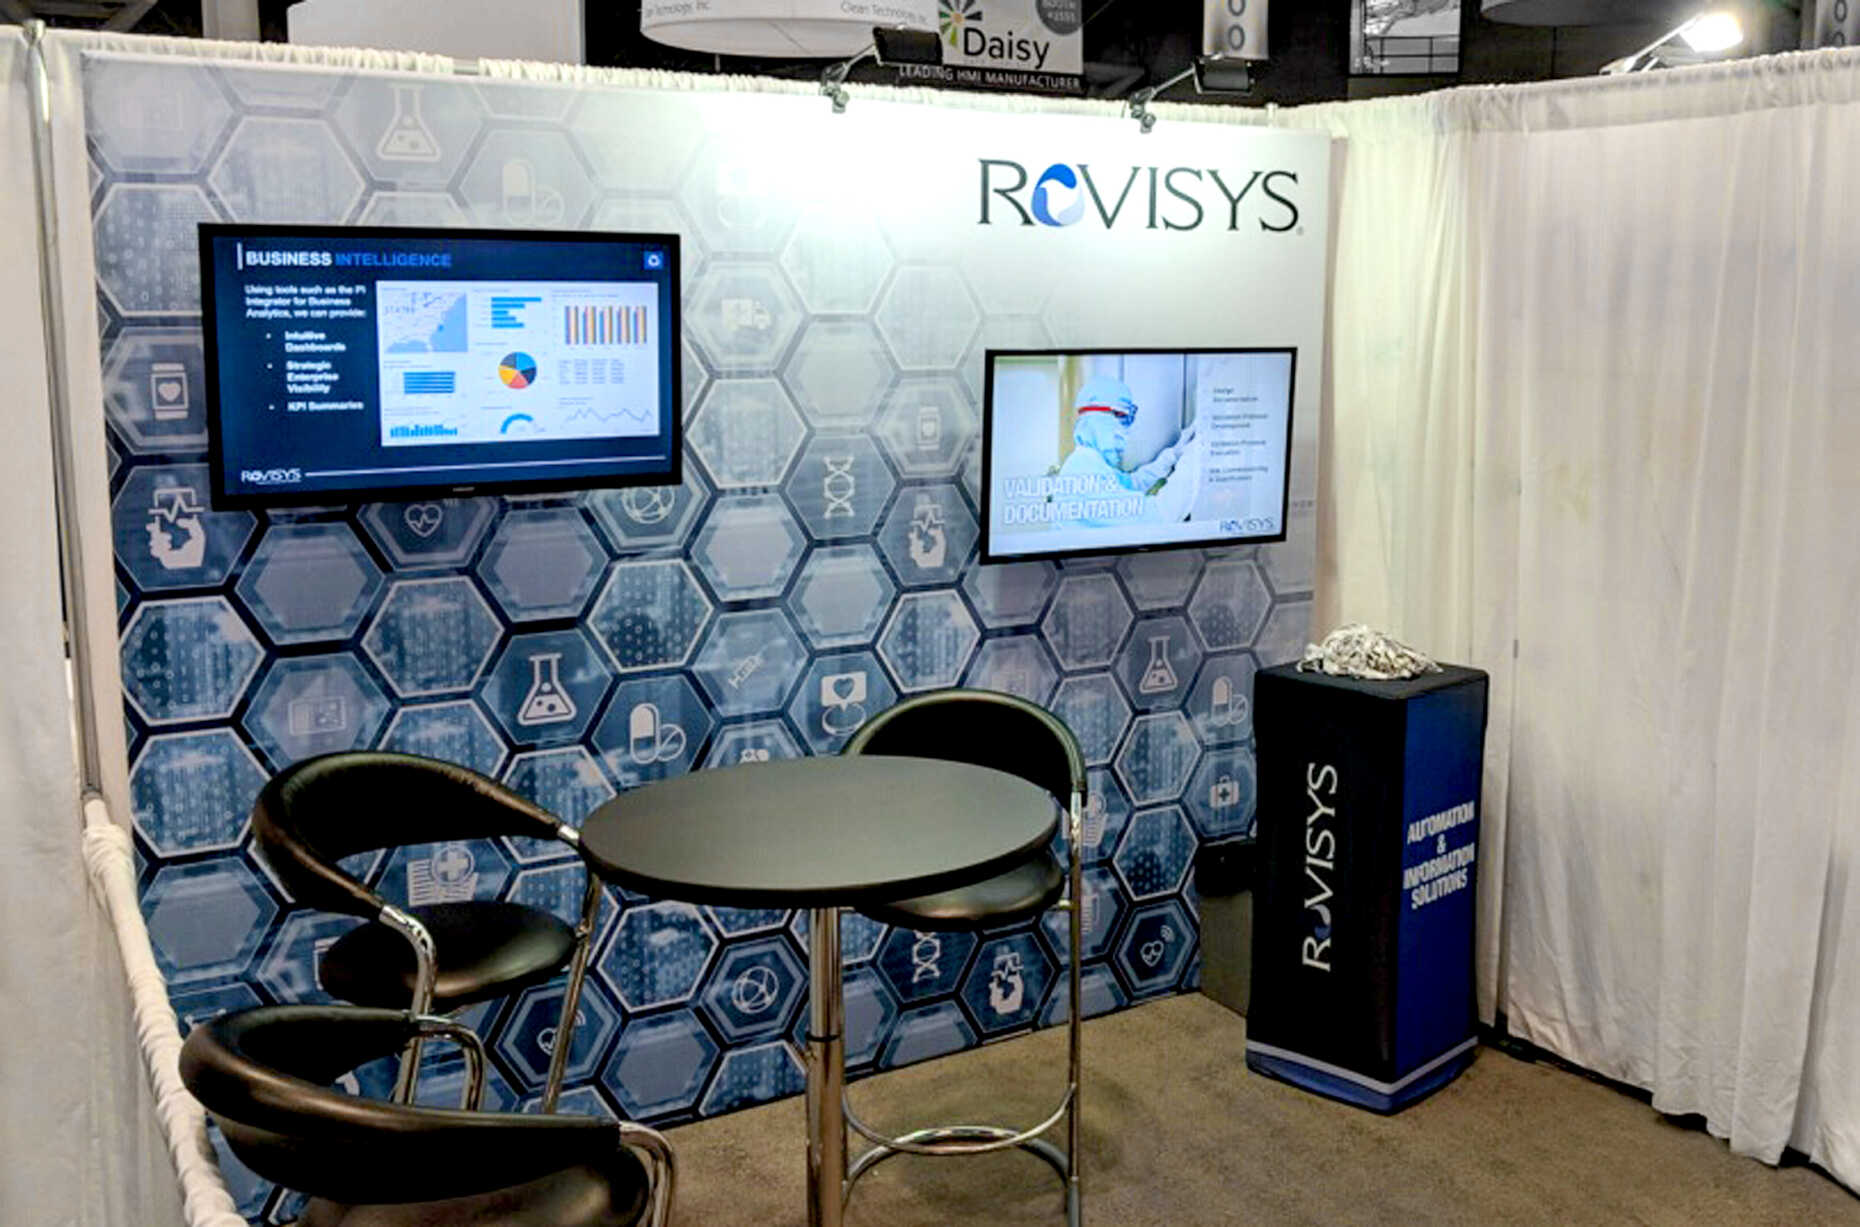 Rovysis exhibited at INTERPHEX in a nice clean 10x10.